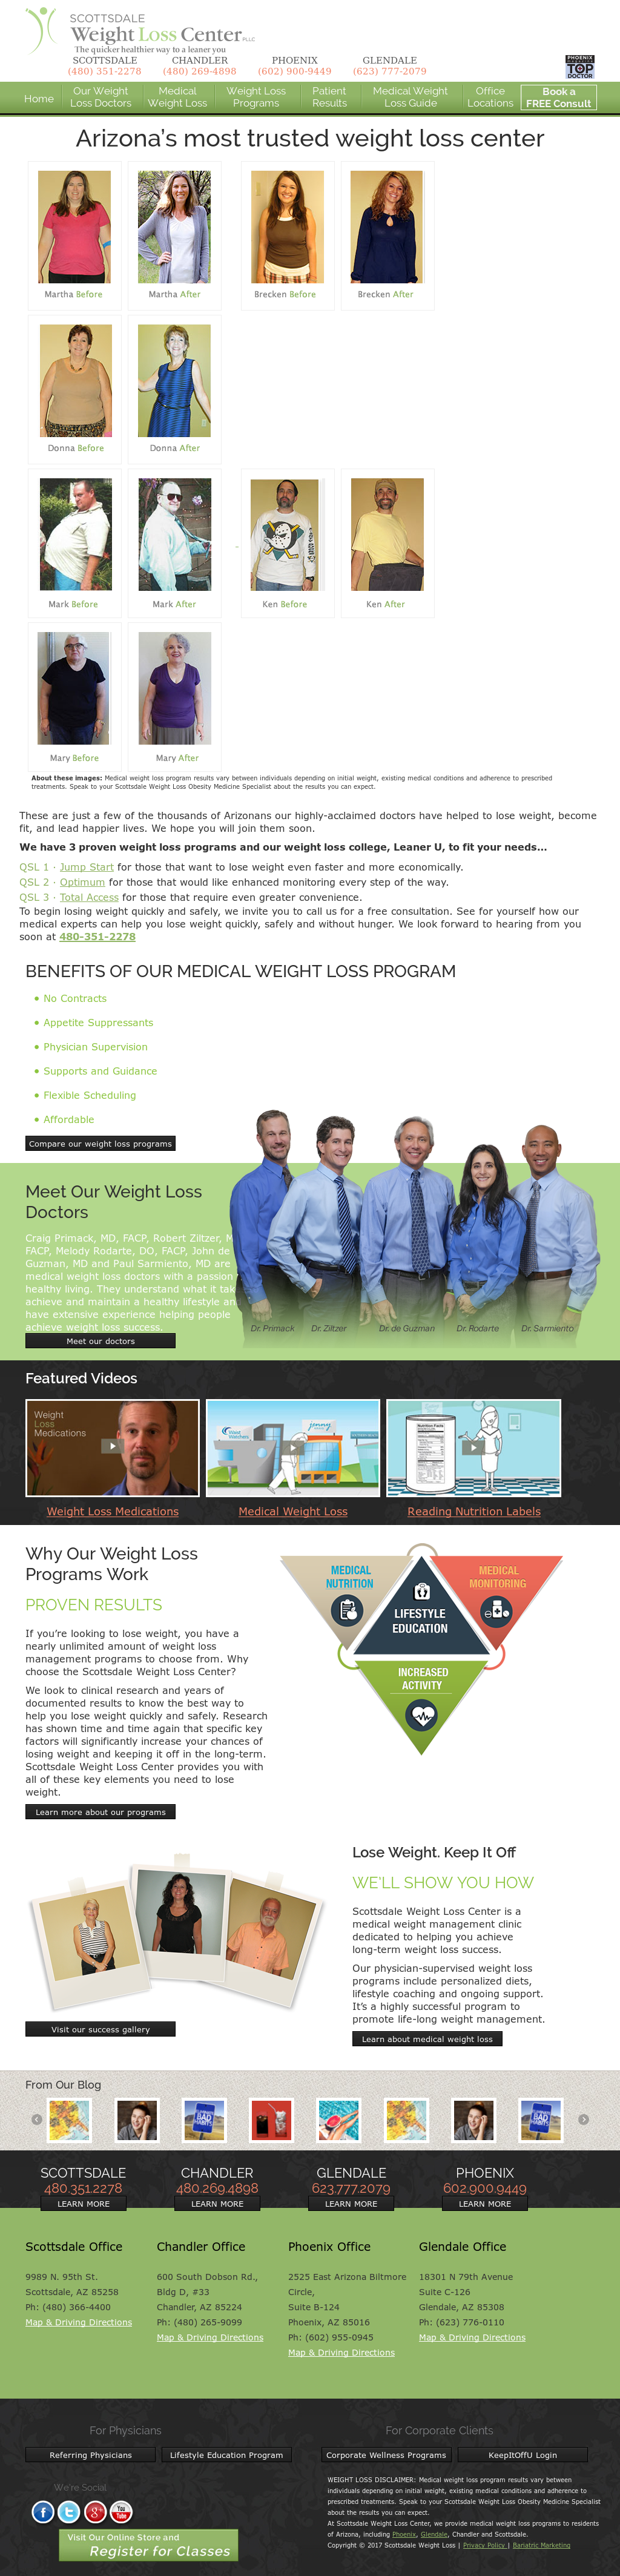 Scottsdaleweightloss Competitors Revenue And Employees Owler